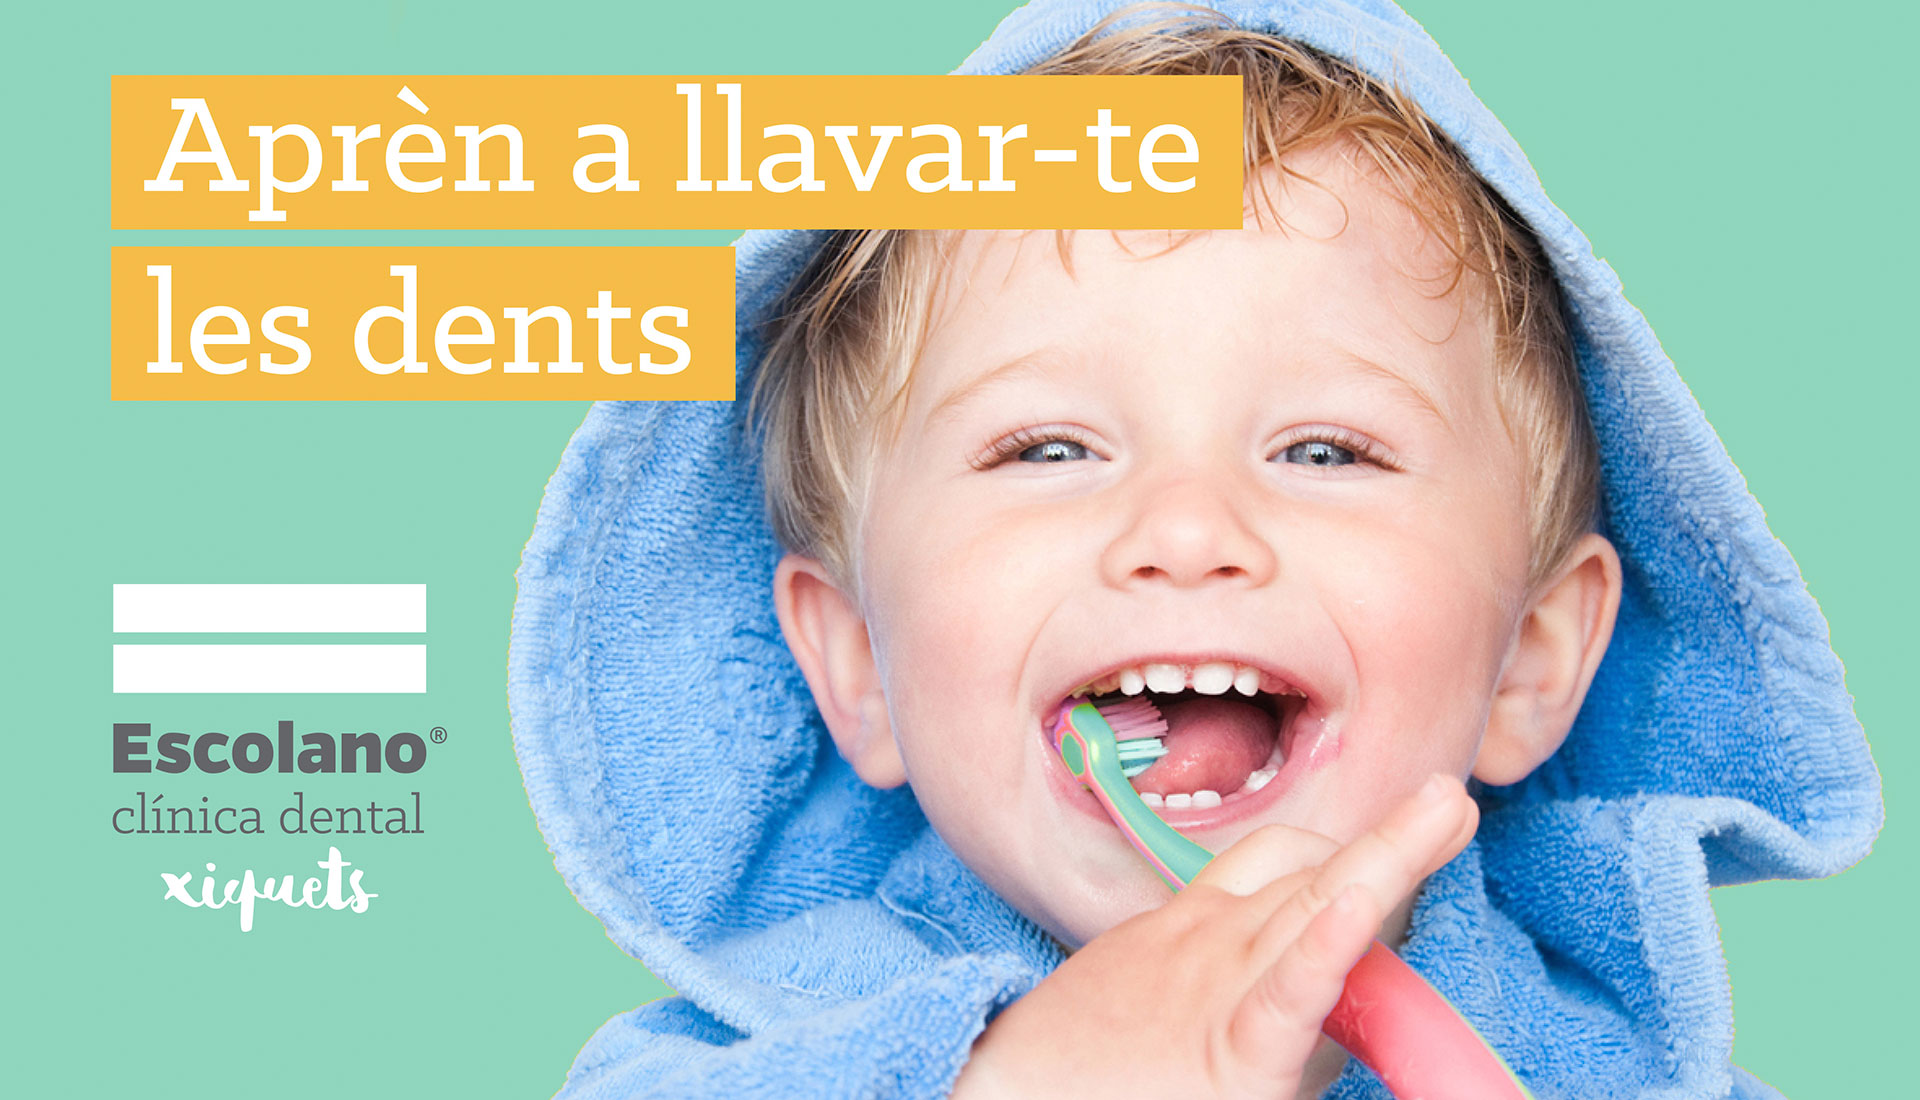 agencia-publicidad-marketing-digital-identidad-corporativa-clinica-dental-gandia-08